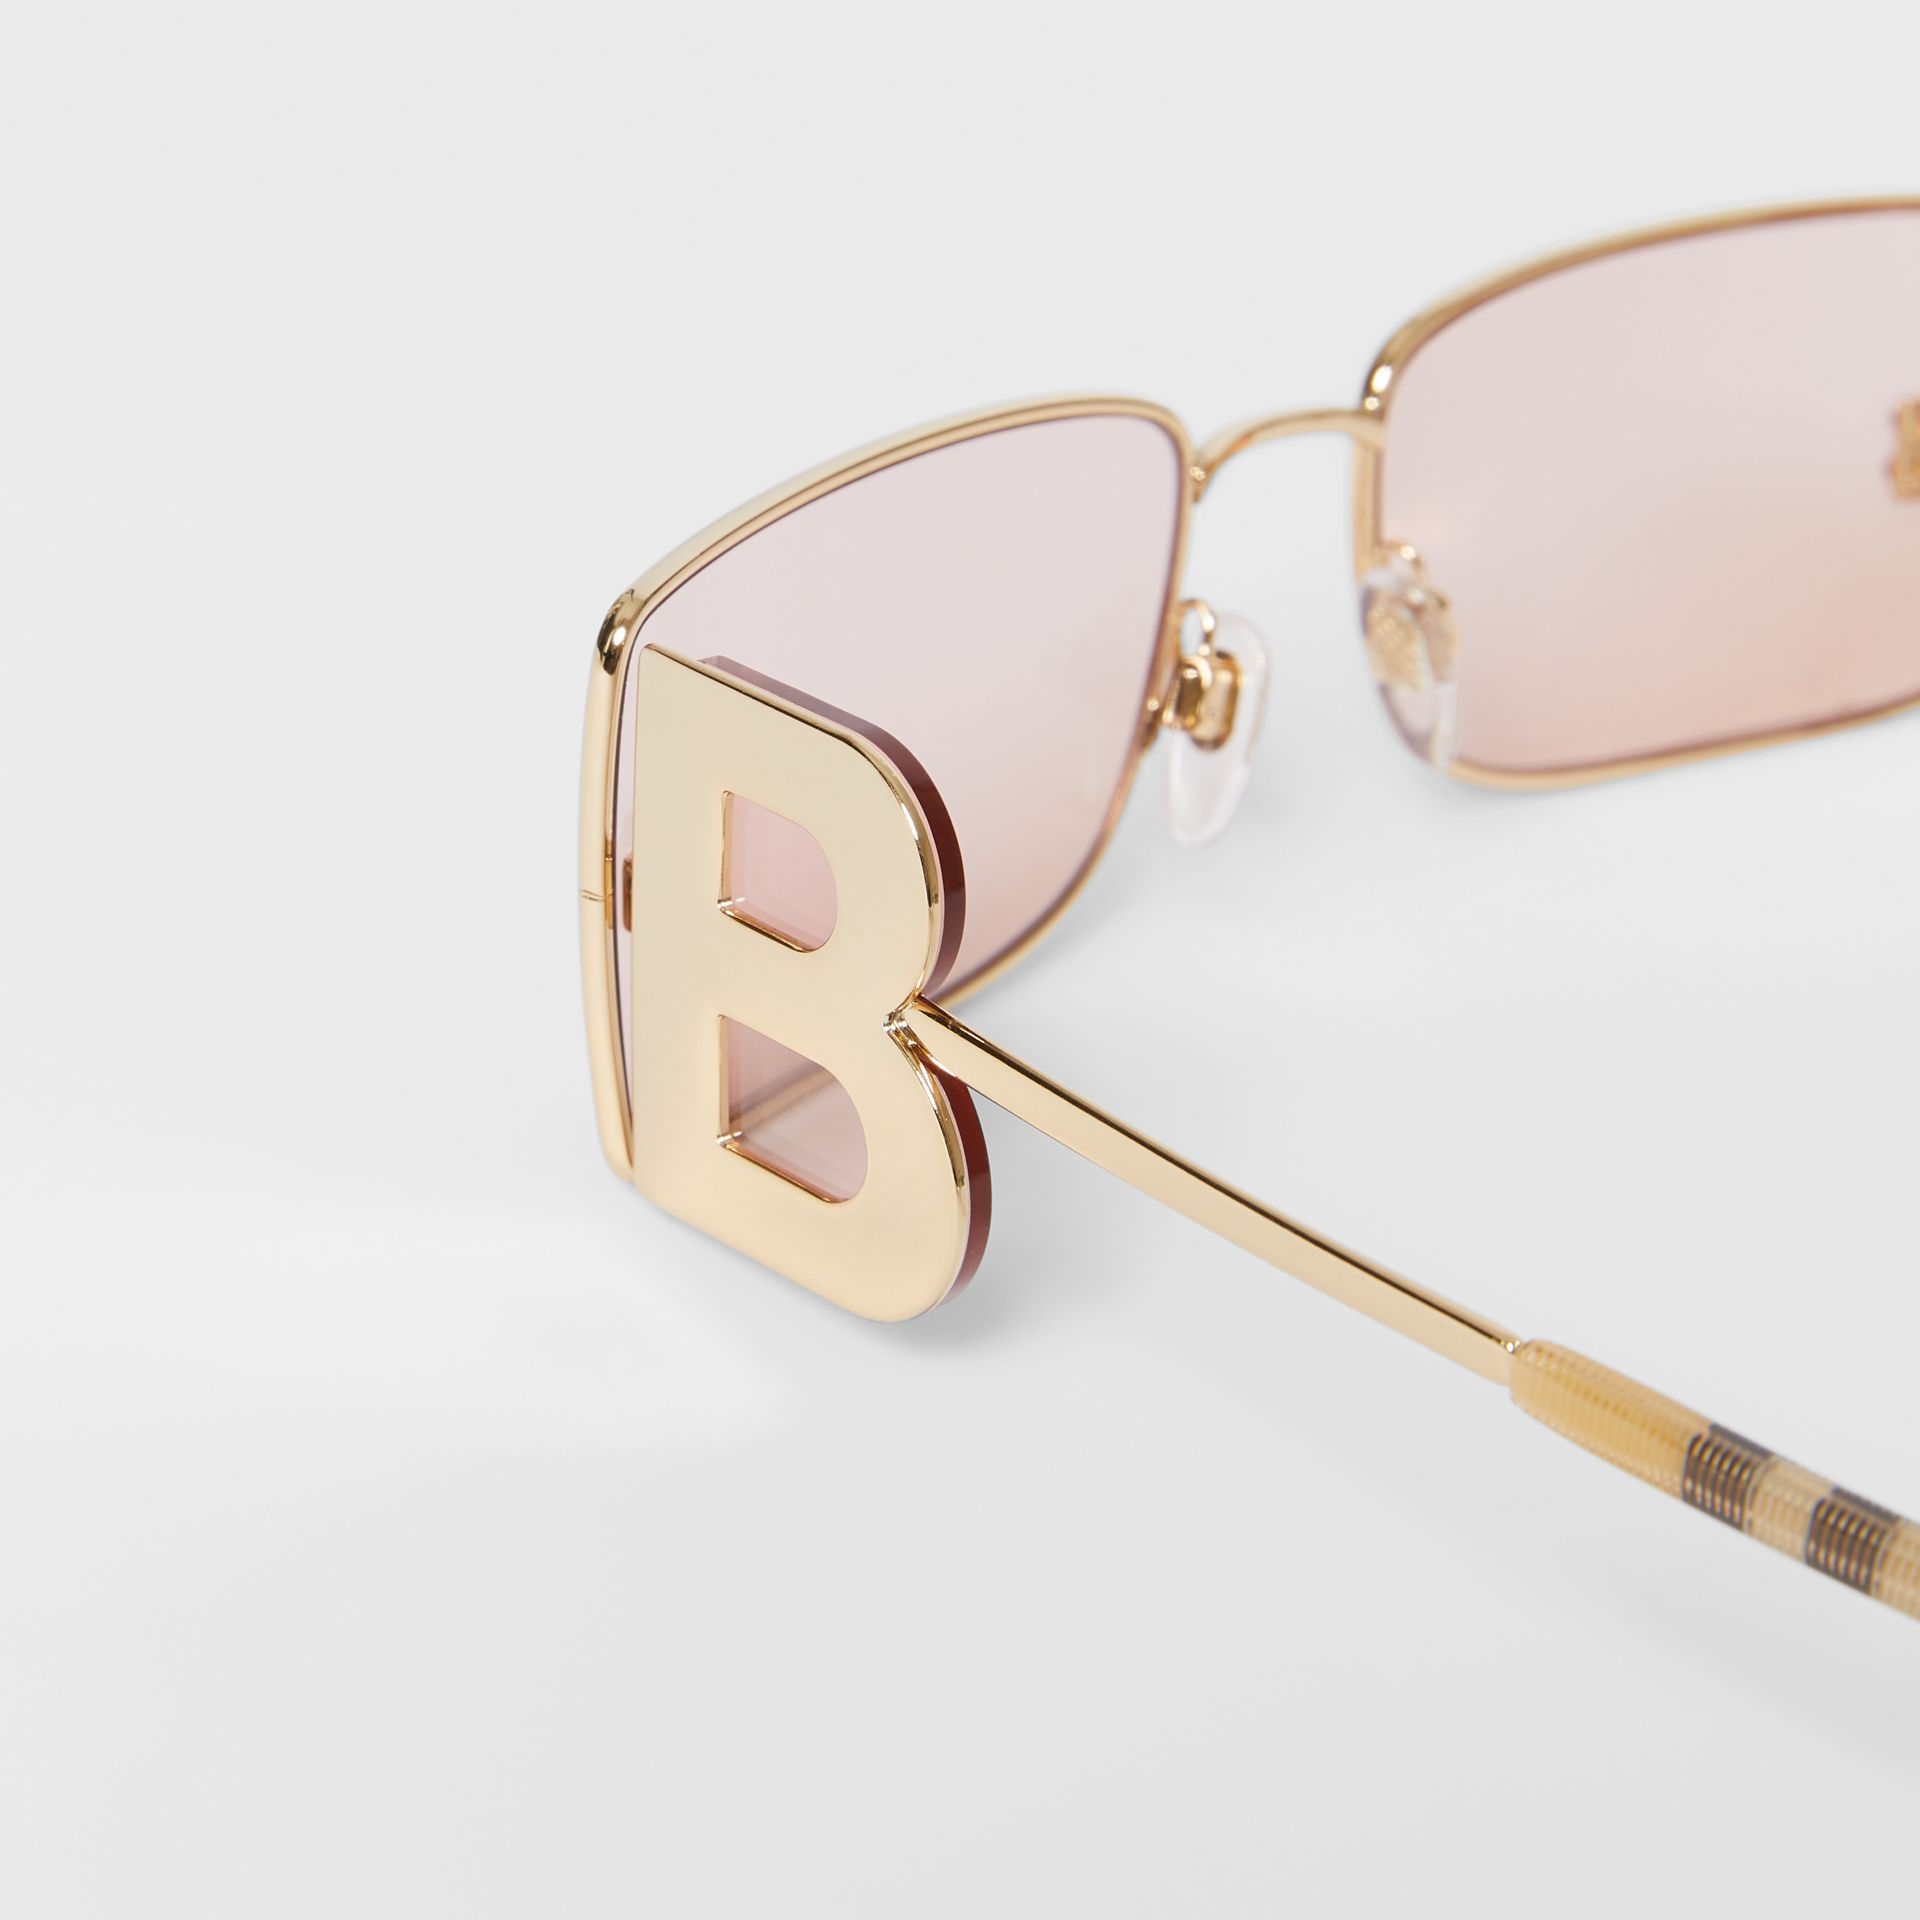 'B' Lens Detail Rectangular Frame Sunglasses in Gold - Women | Burberry - gallery image 1